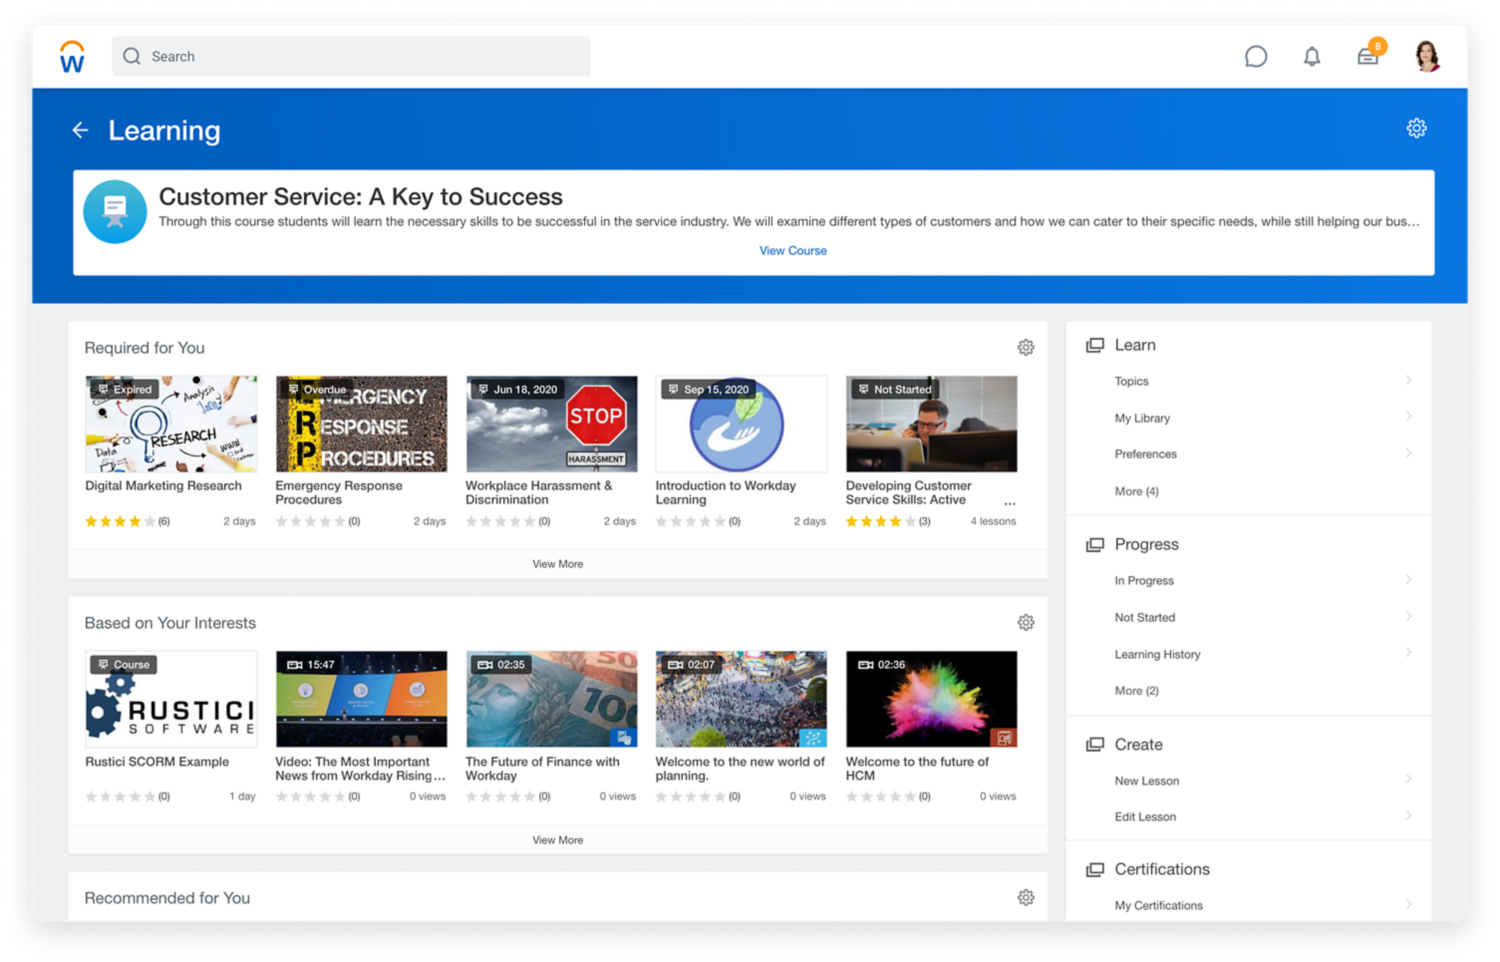 Learning dashboard showing required and recommended videos, as well as videos based on your interest.